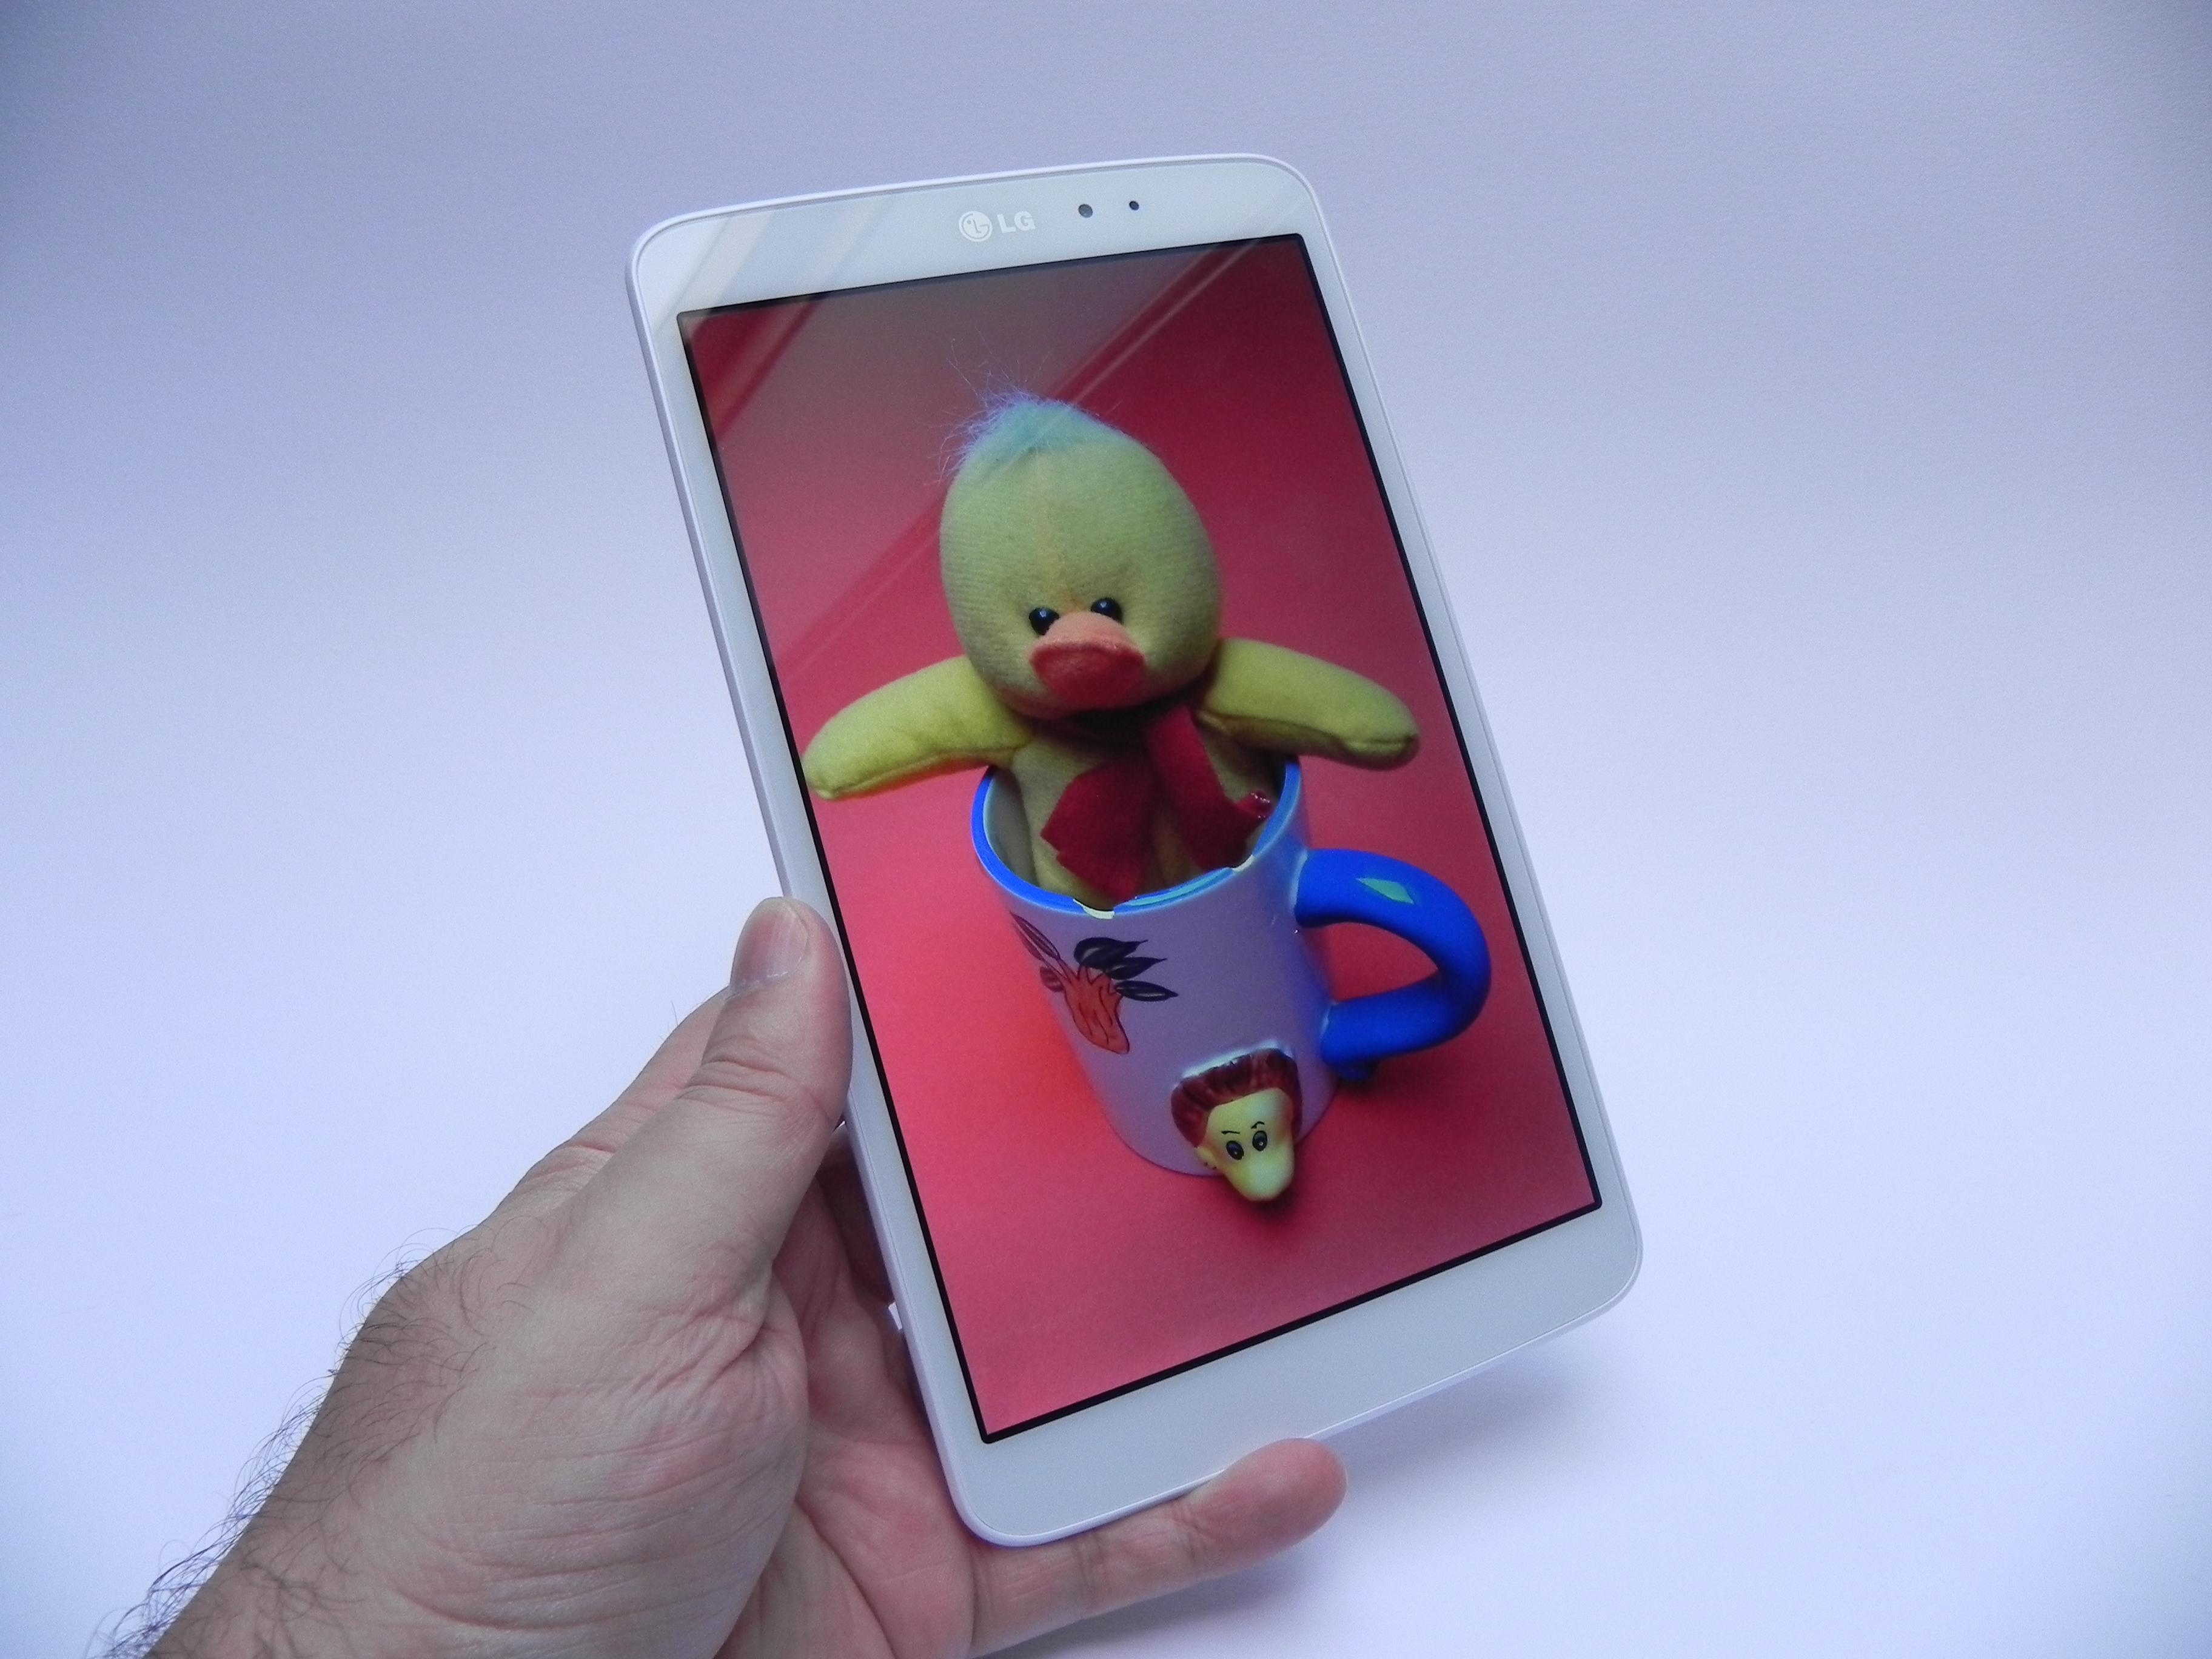 LG G Pad 8.3 Review: Probably the Best Small Android ...